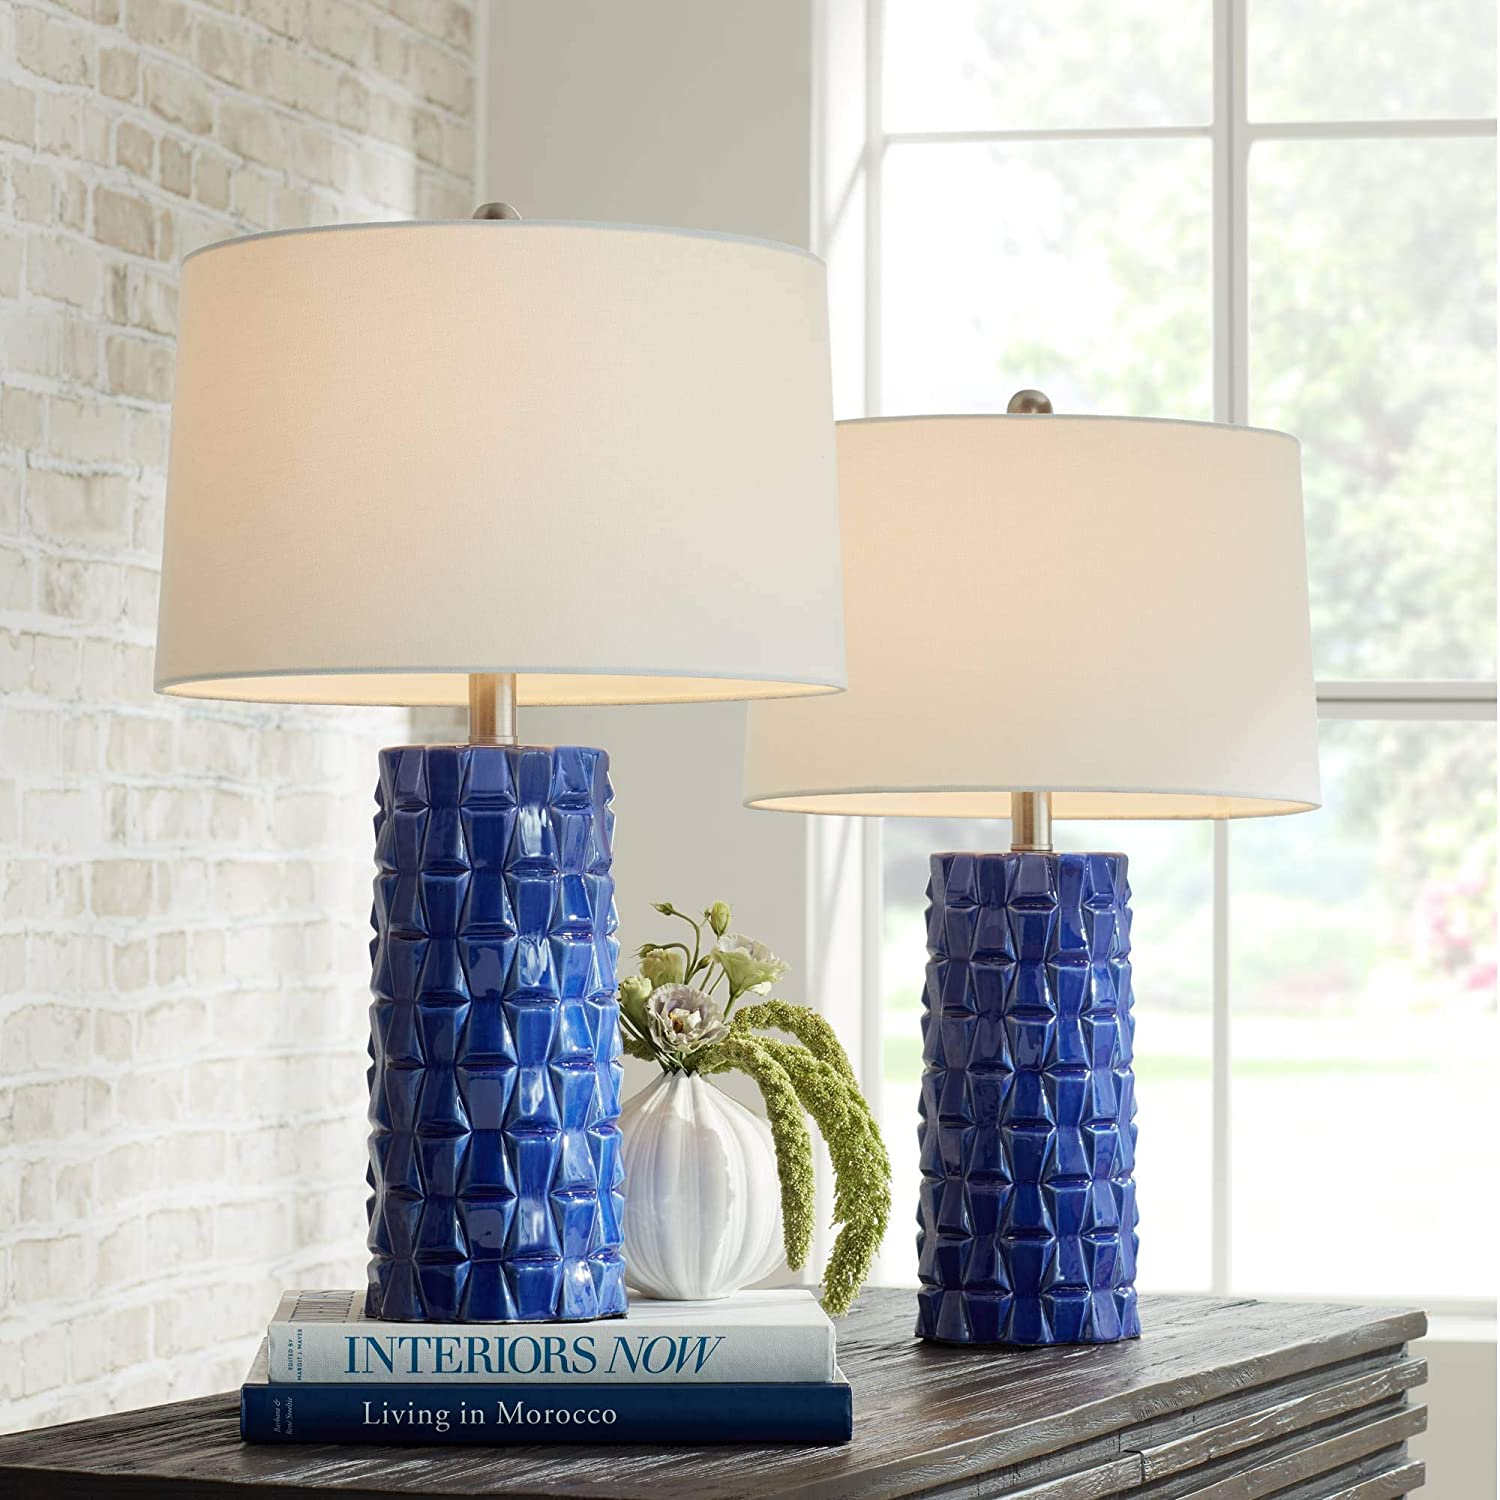 Rico Modern Table Lamps Set of 2 Textured Blue Ceramic Column White Drum Shade for Living Room Bedroom Bedside Nightstand Office Family - 360 Lighting